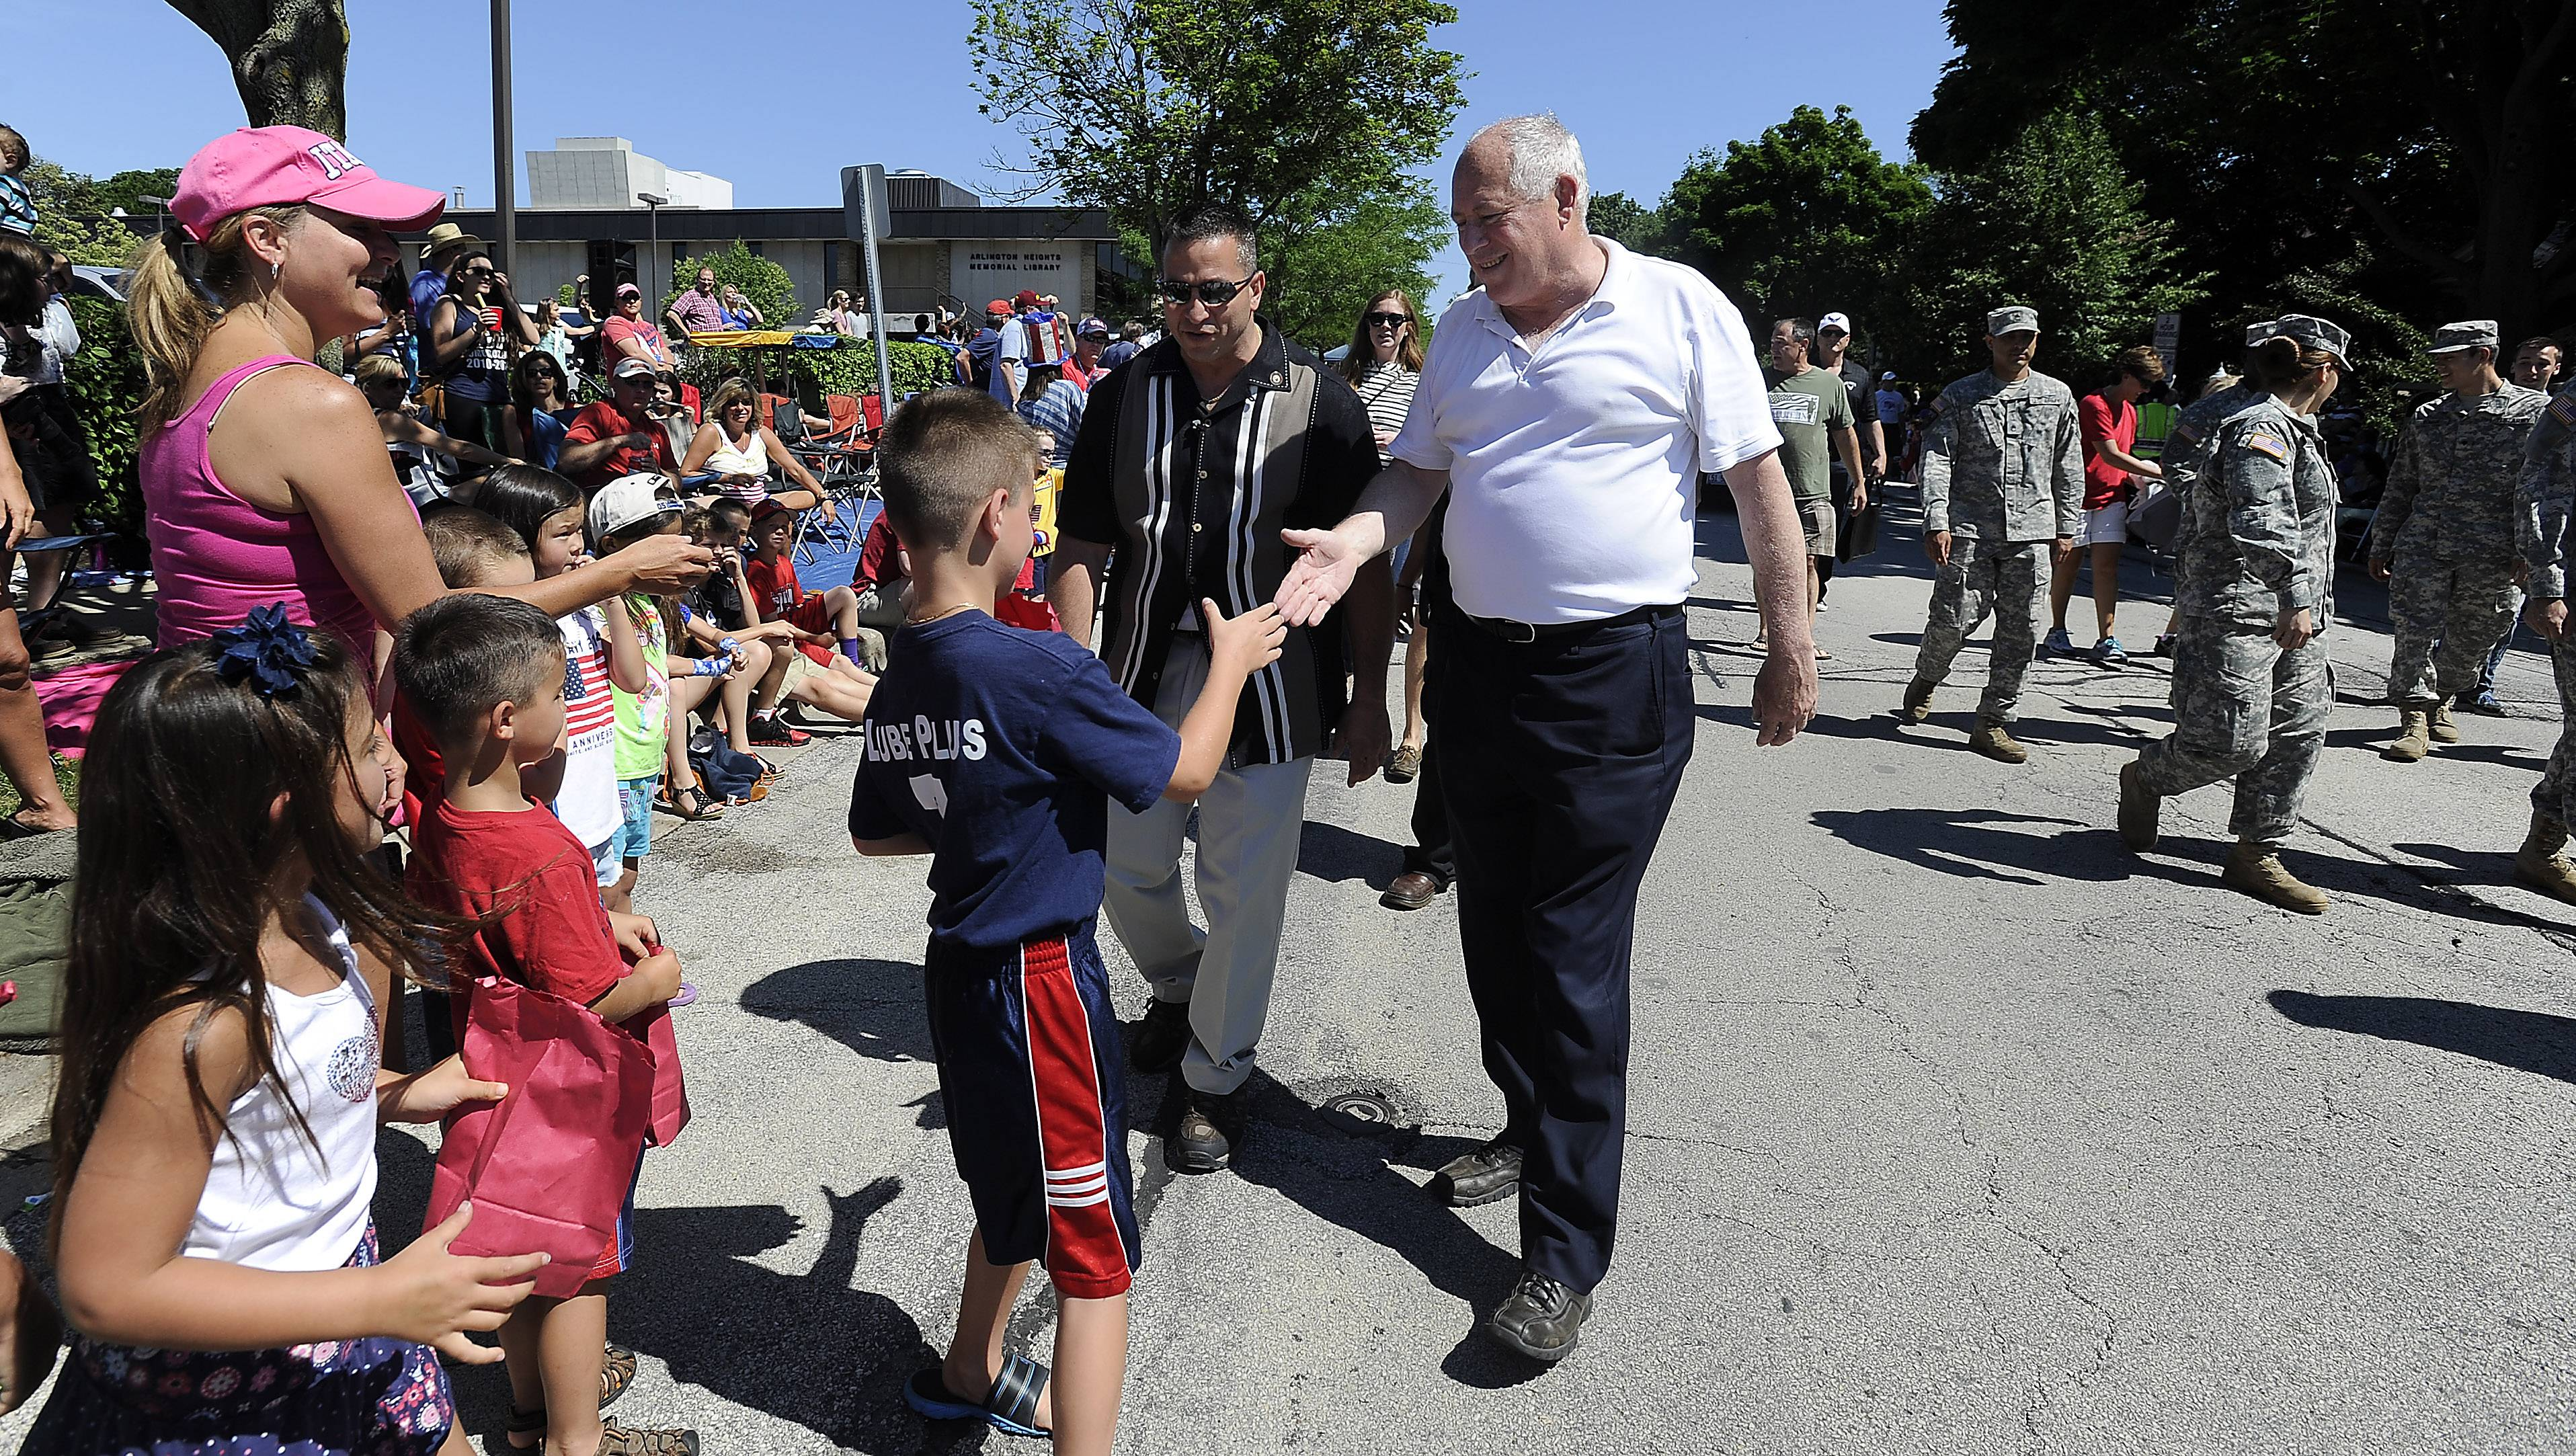 Illinois Governor Pat Quinn greets the people along the parade route of the Arlington Heights 4th of July parade on Friday.